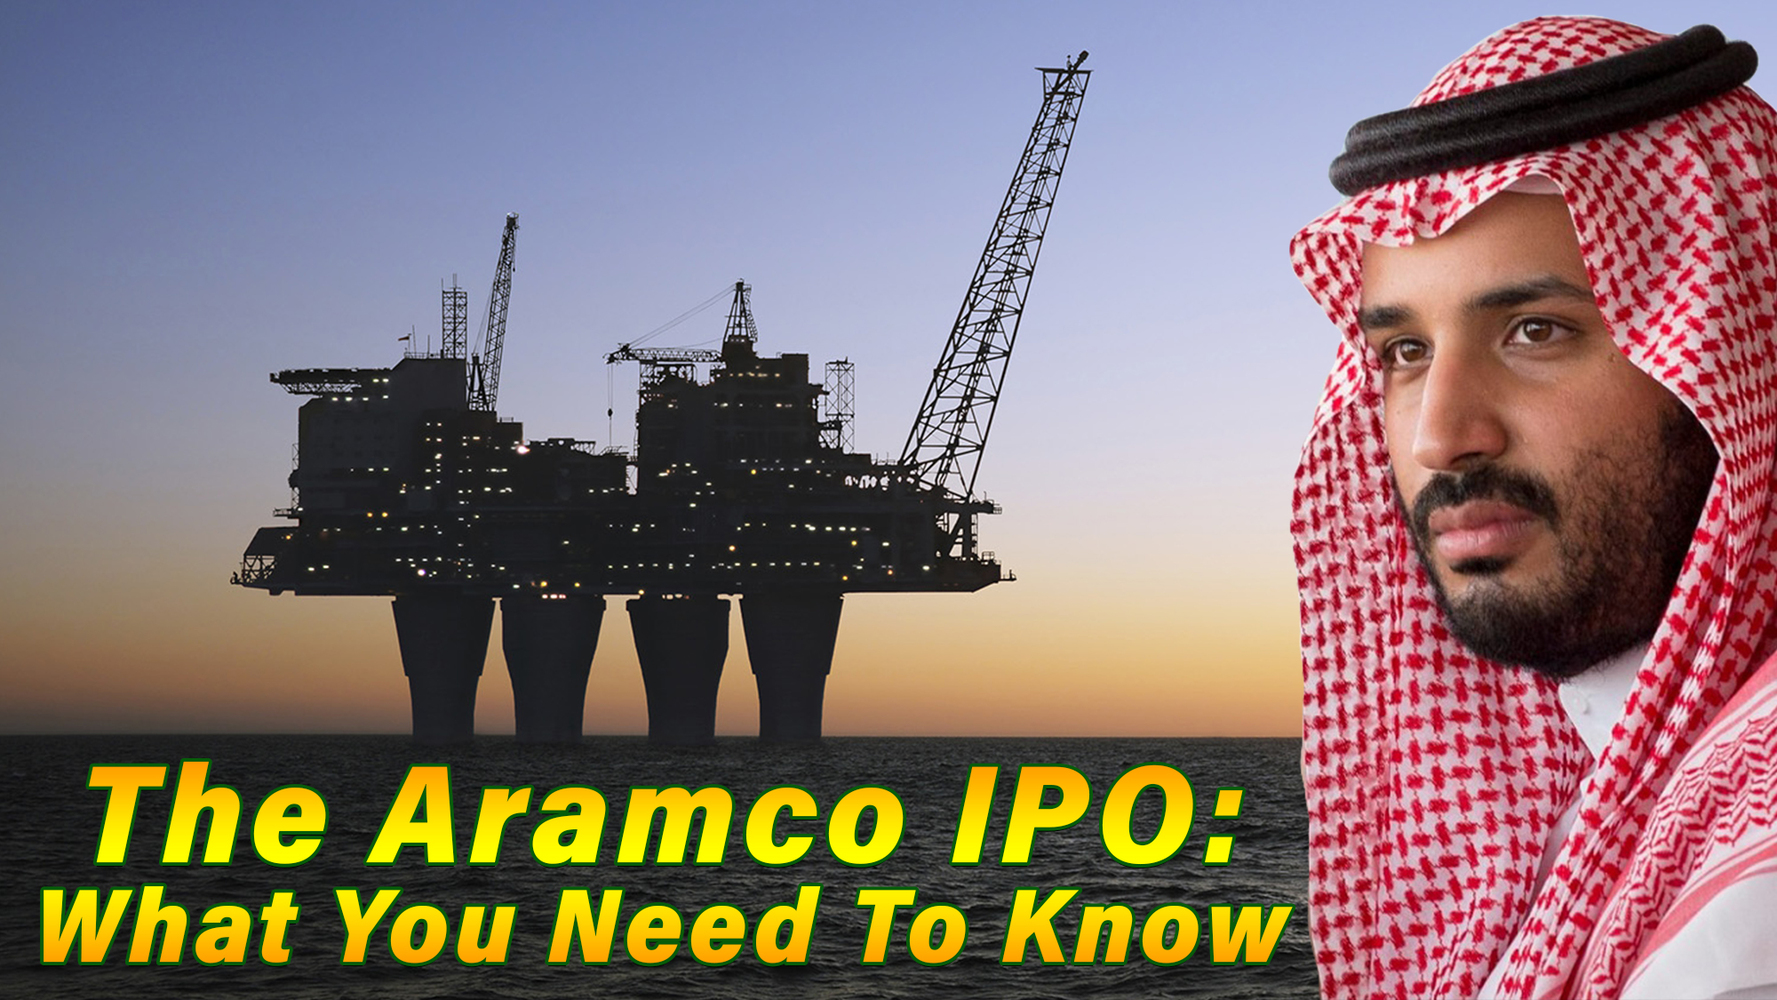 the-saudi-aramco-ipo:-what-you-need-to-know